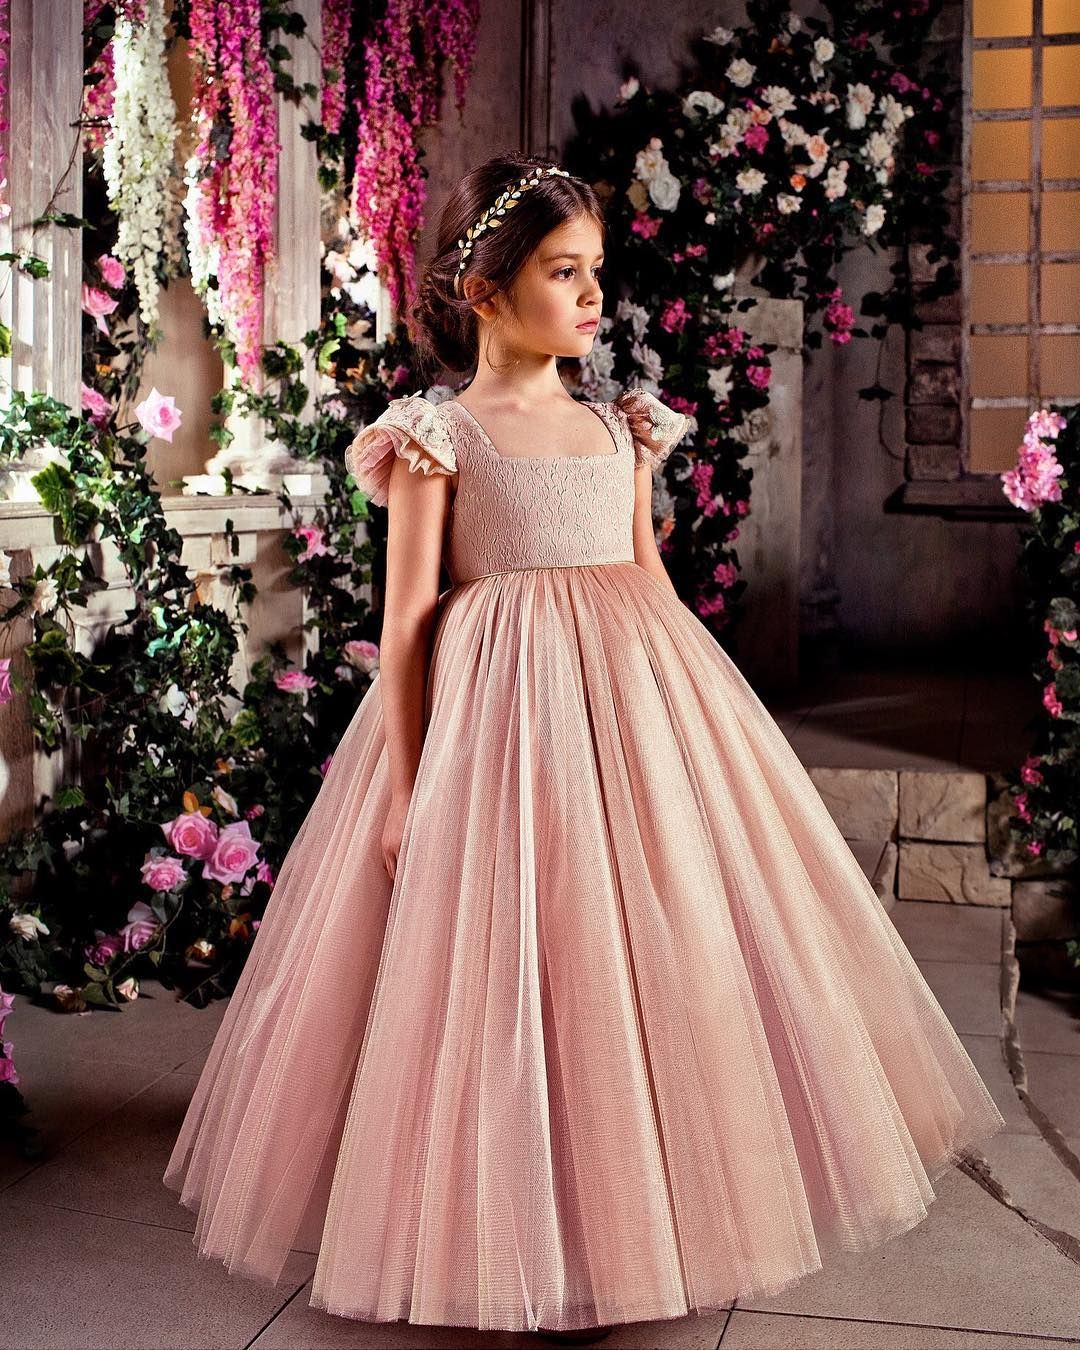 BIBIONA COUTURE SS 2018 | BIBIONA COUTURE | Pinterest | Ss, Couture ...